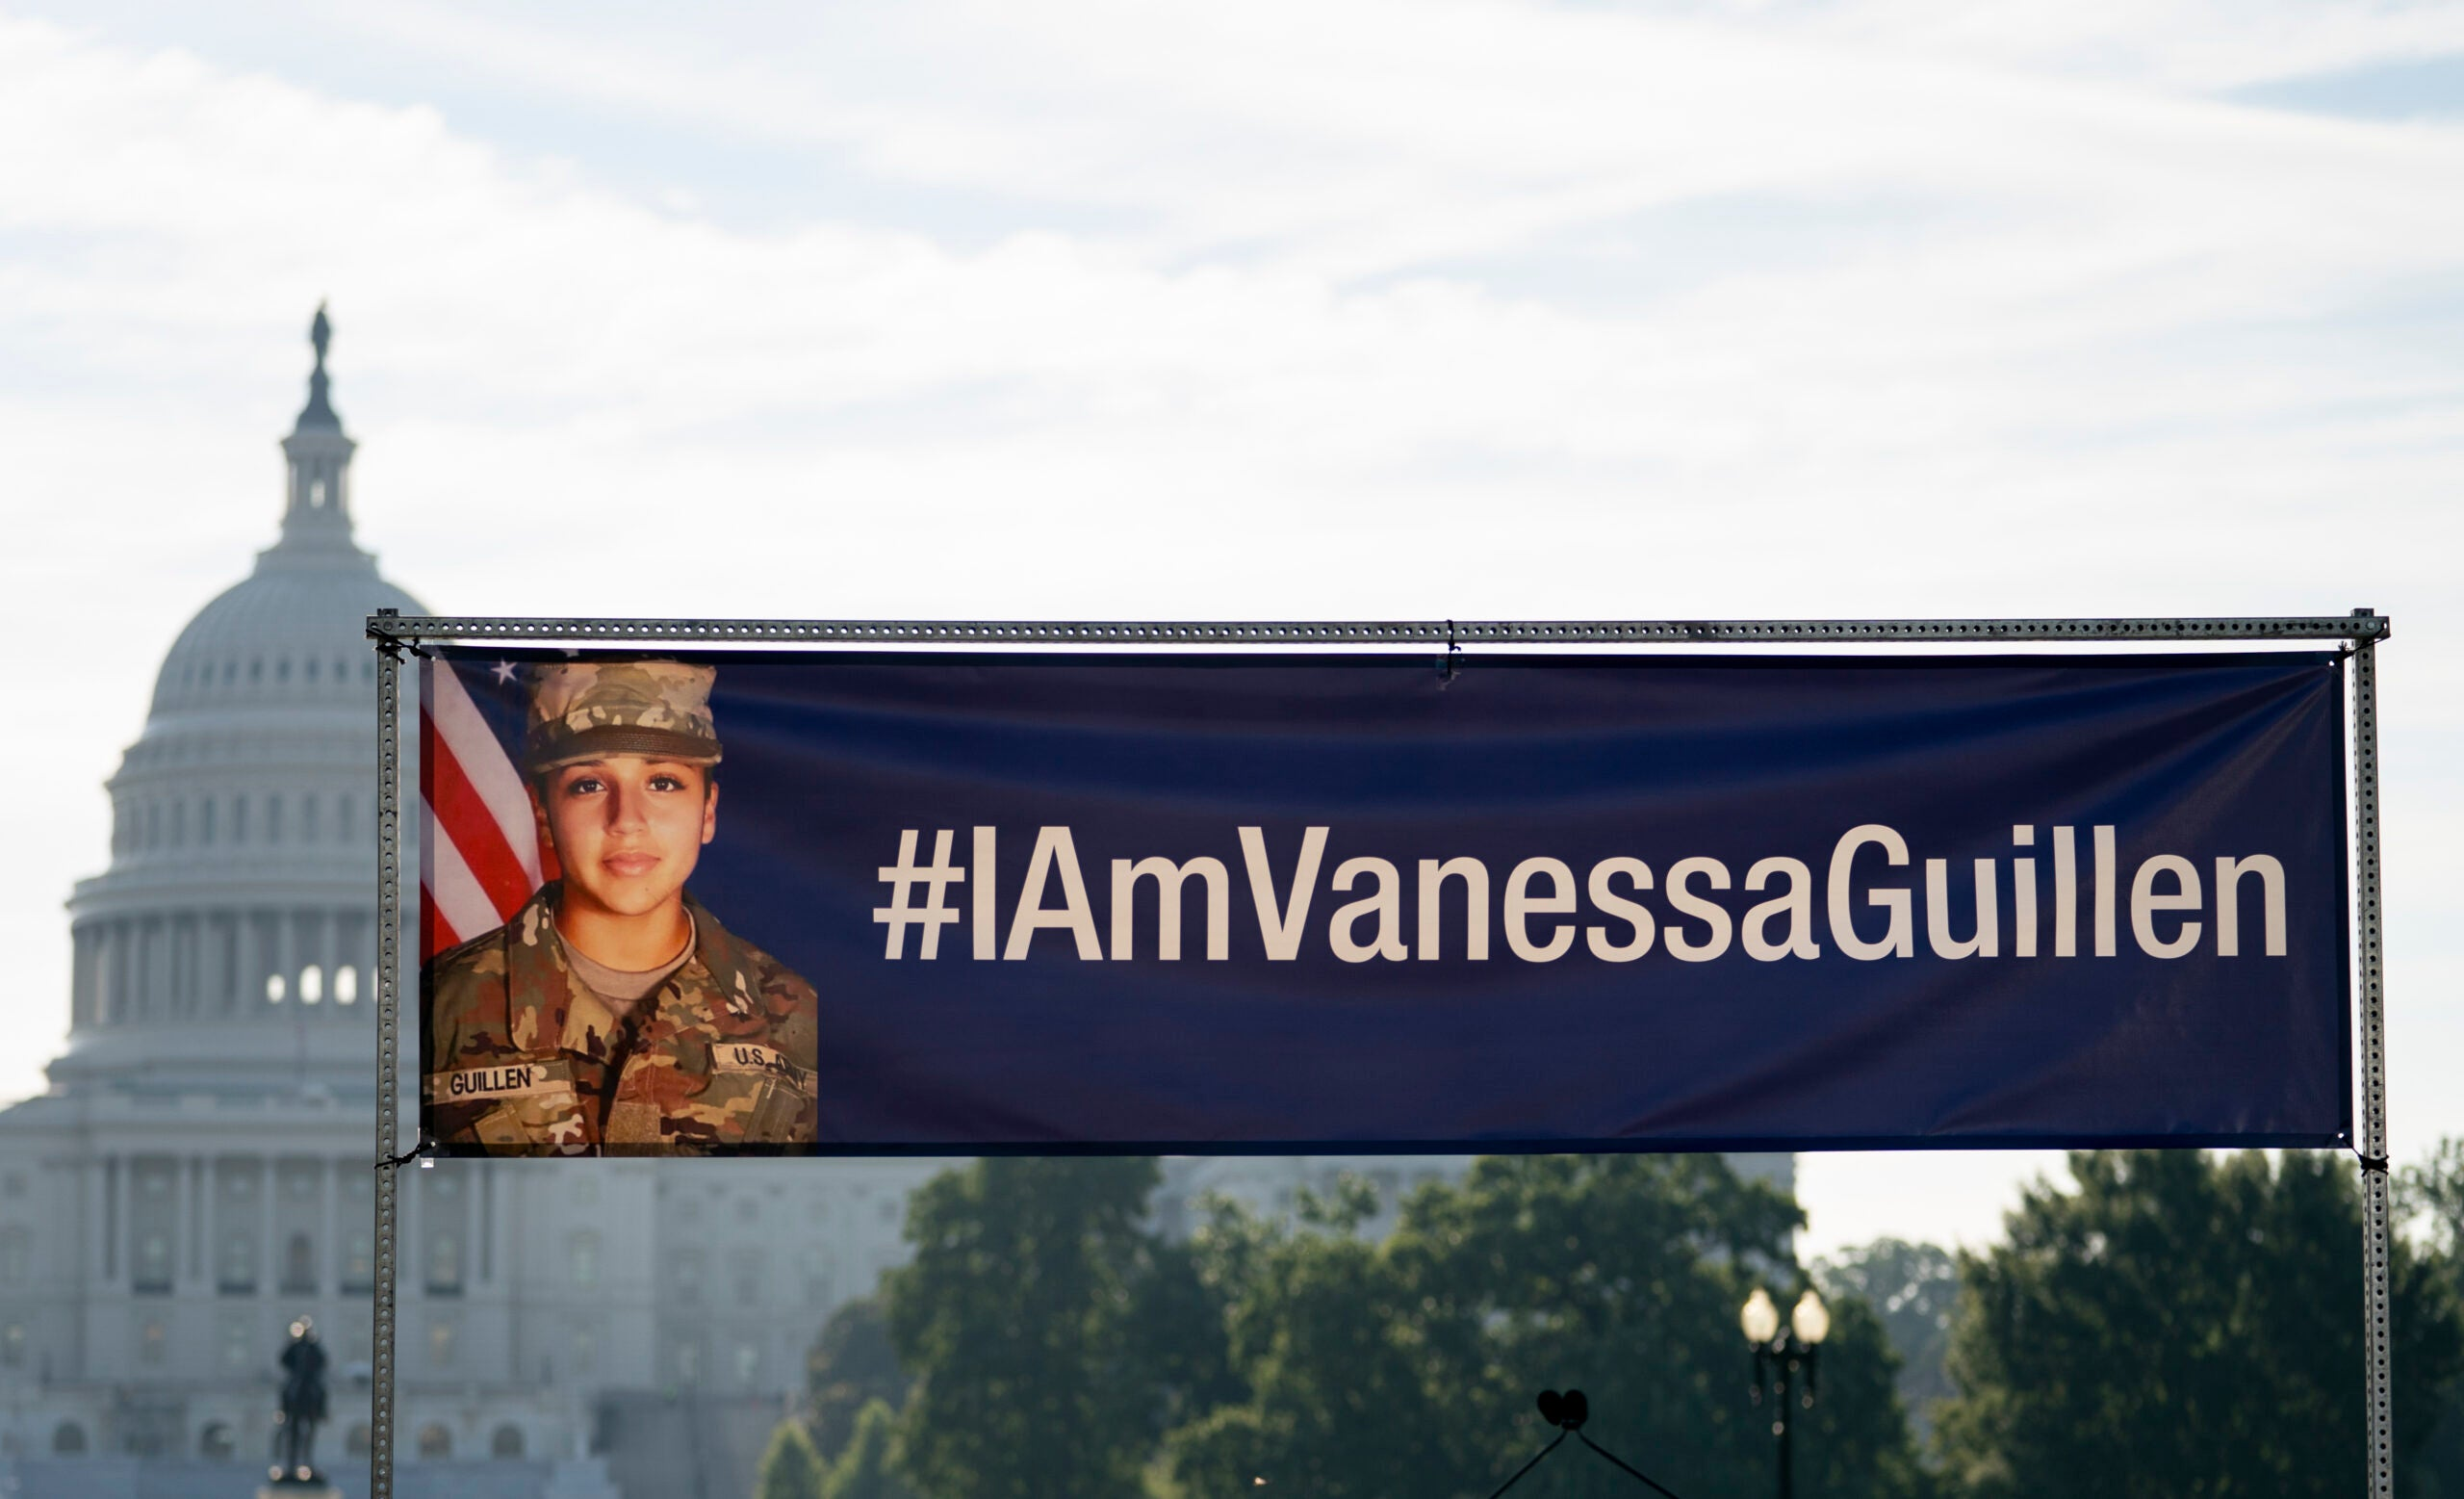 New Army report confirms Vanessa Guillén was sexually harassed by a member of her unit before her death [Updated]